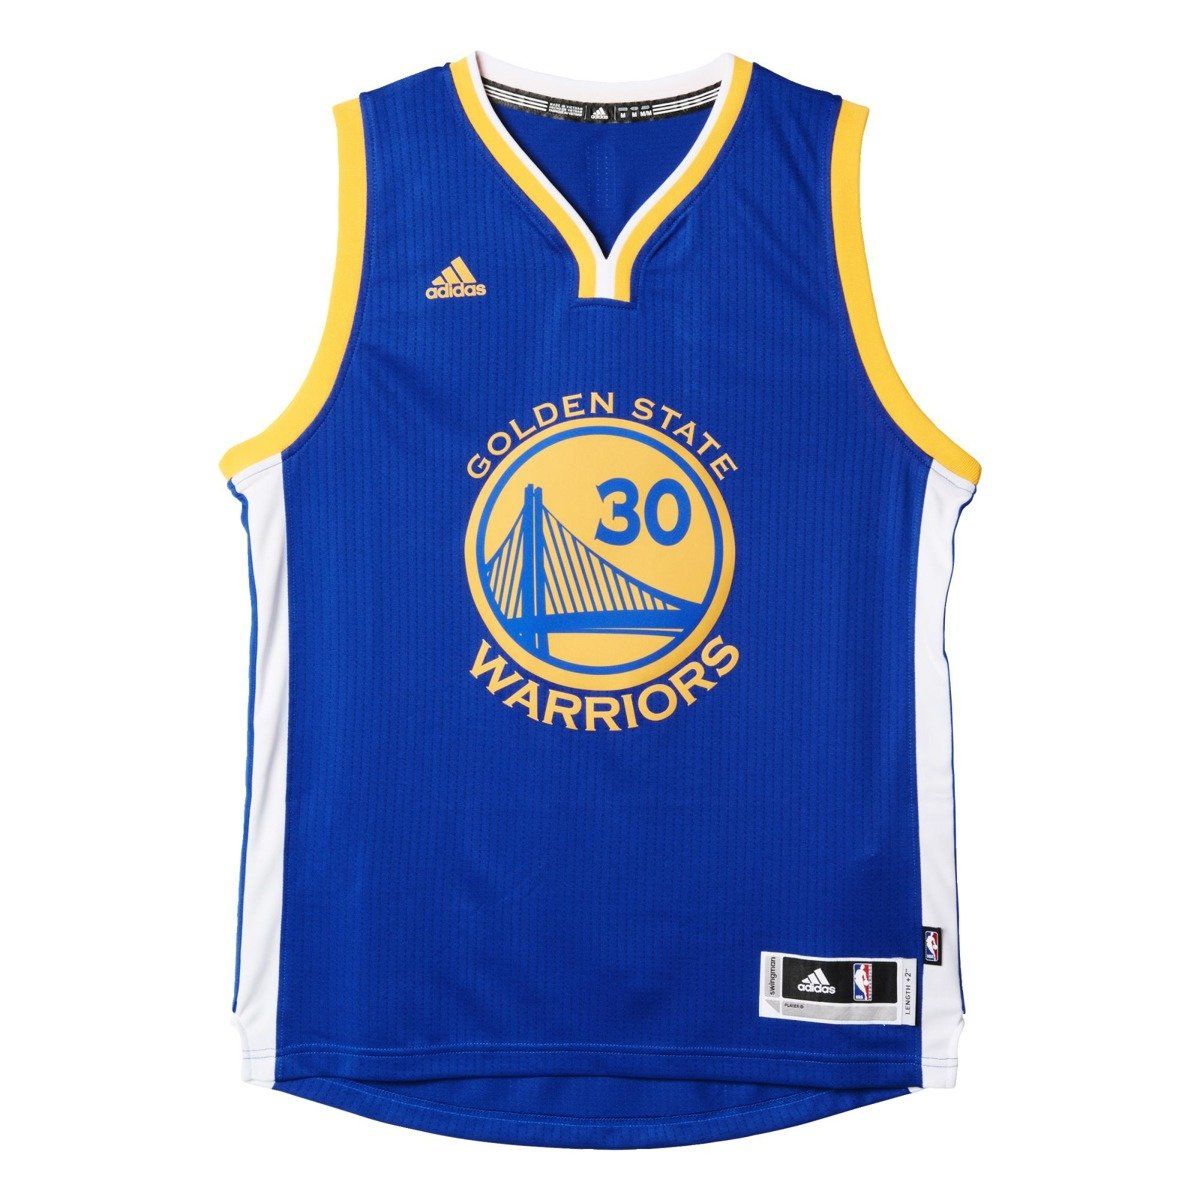 Adidas Stephen Curry #30 Golden State Warriors Jersey ...